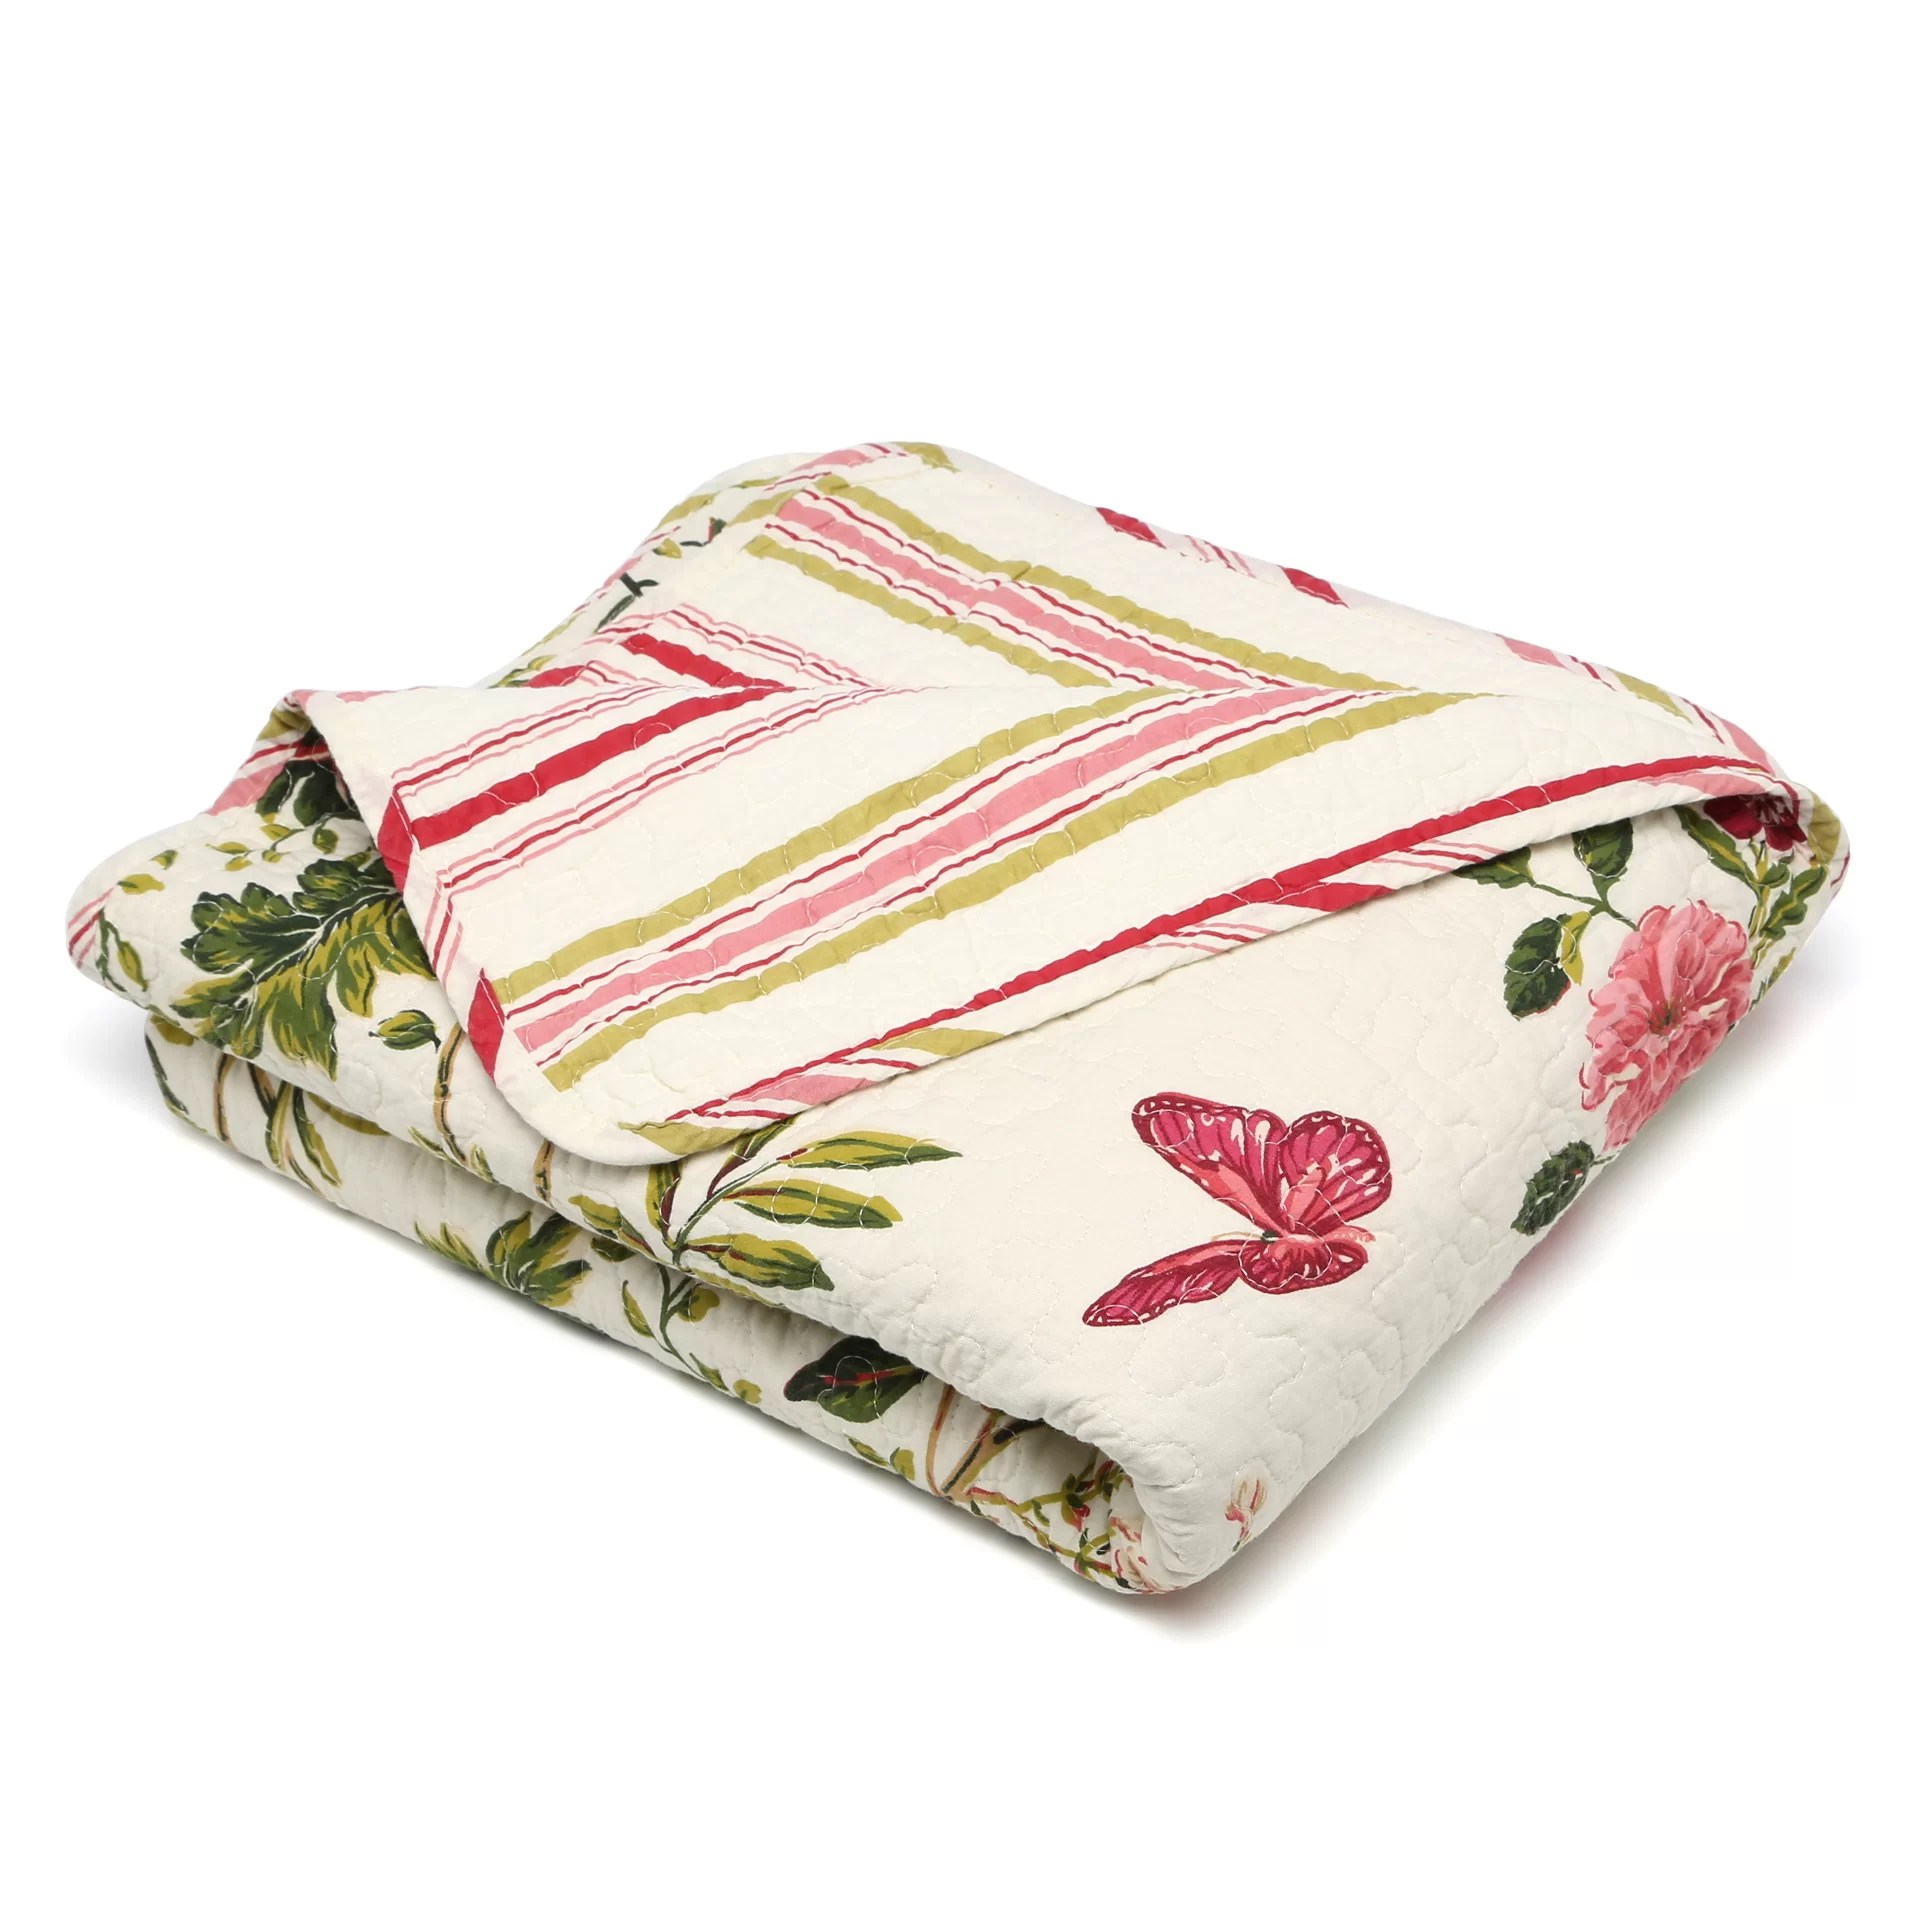 Cotton Throws August Grove Arielle Quilted Cotton Throw Blanket